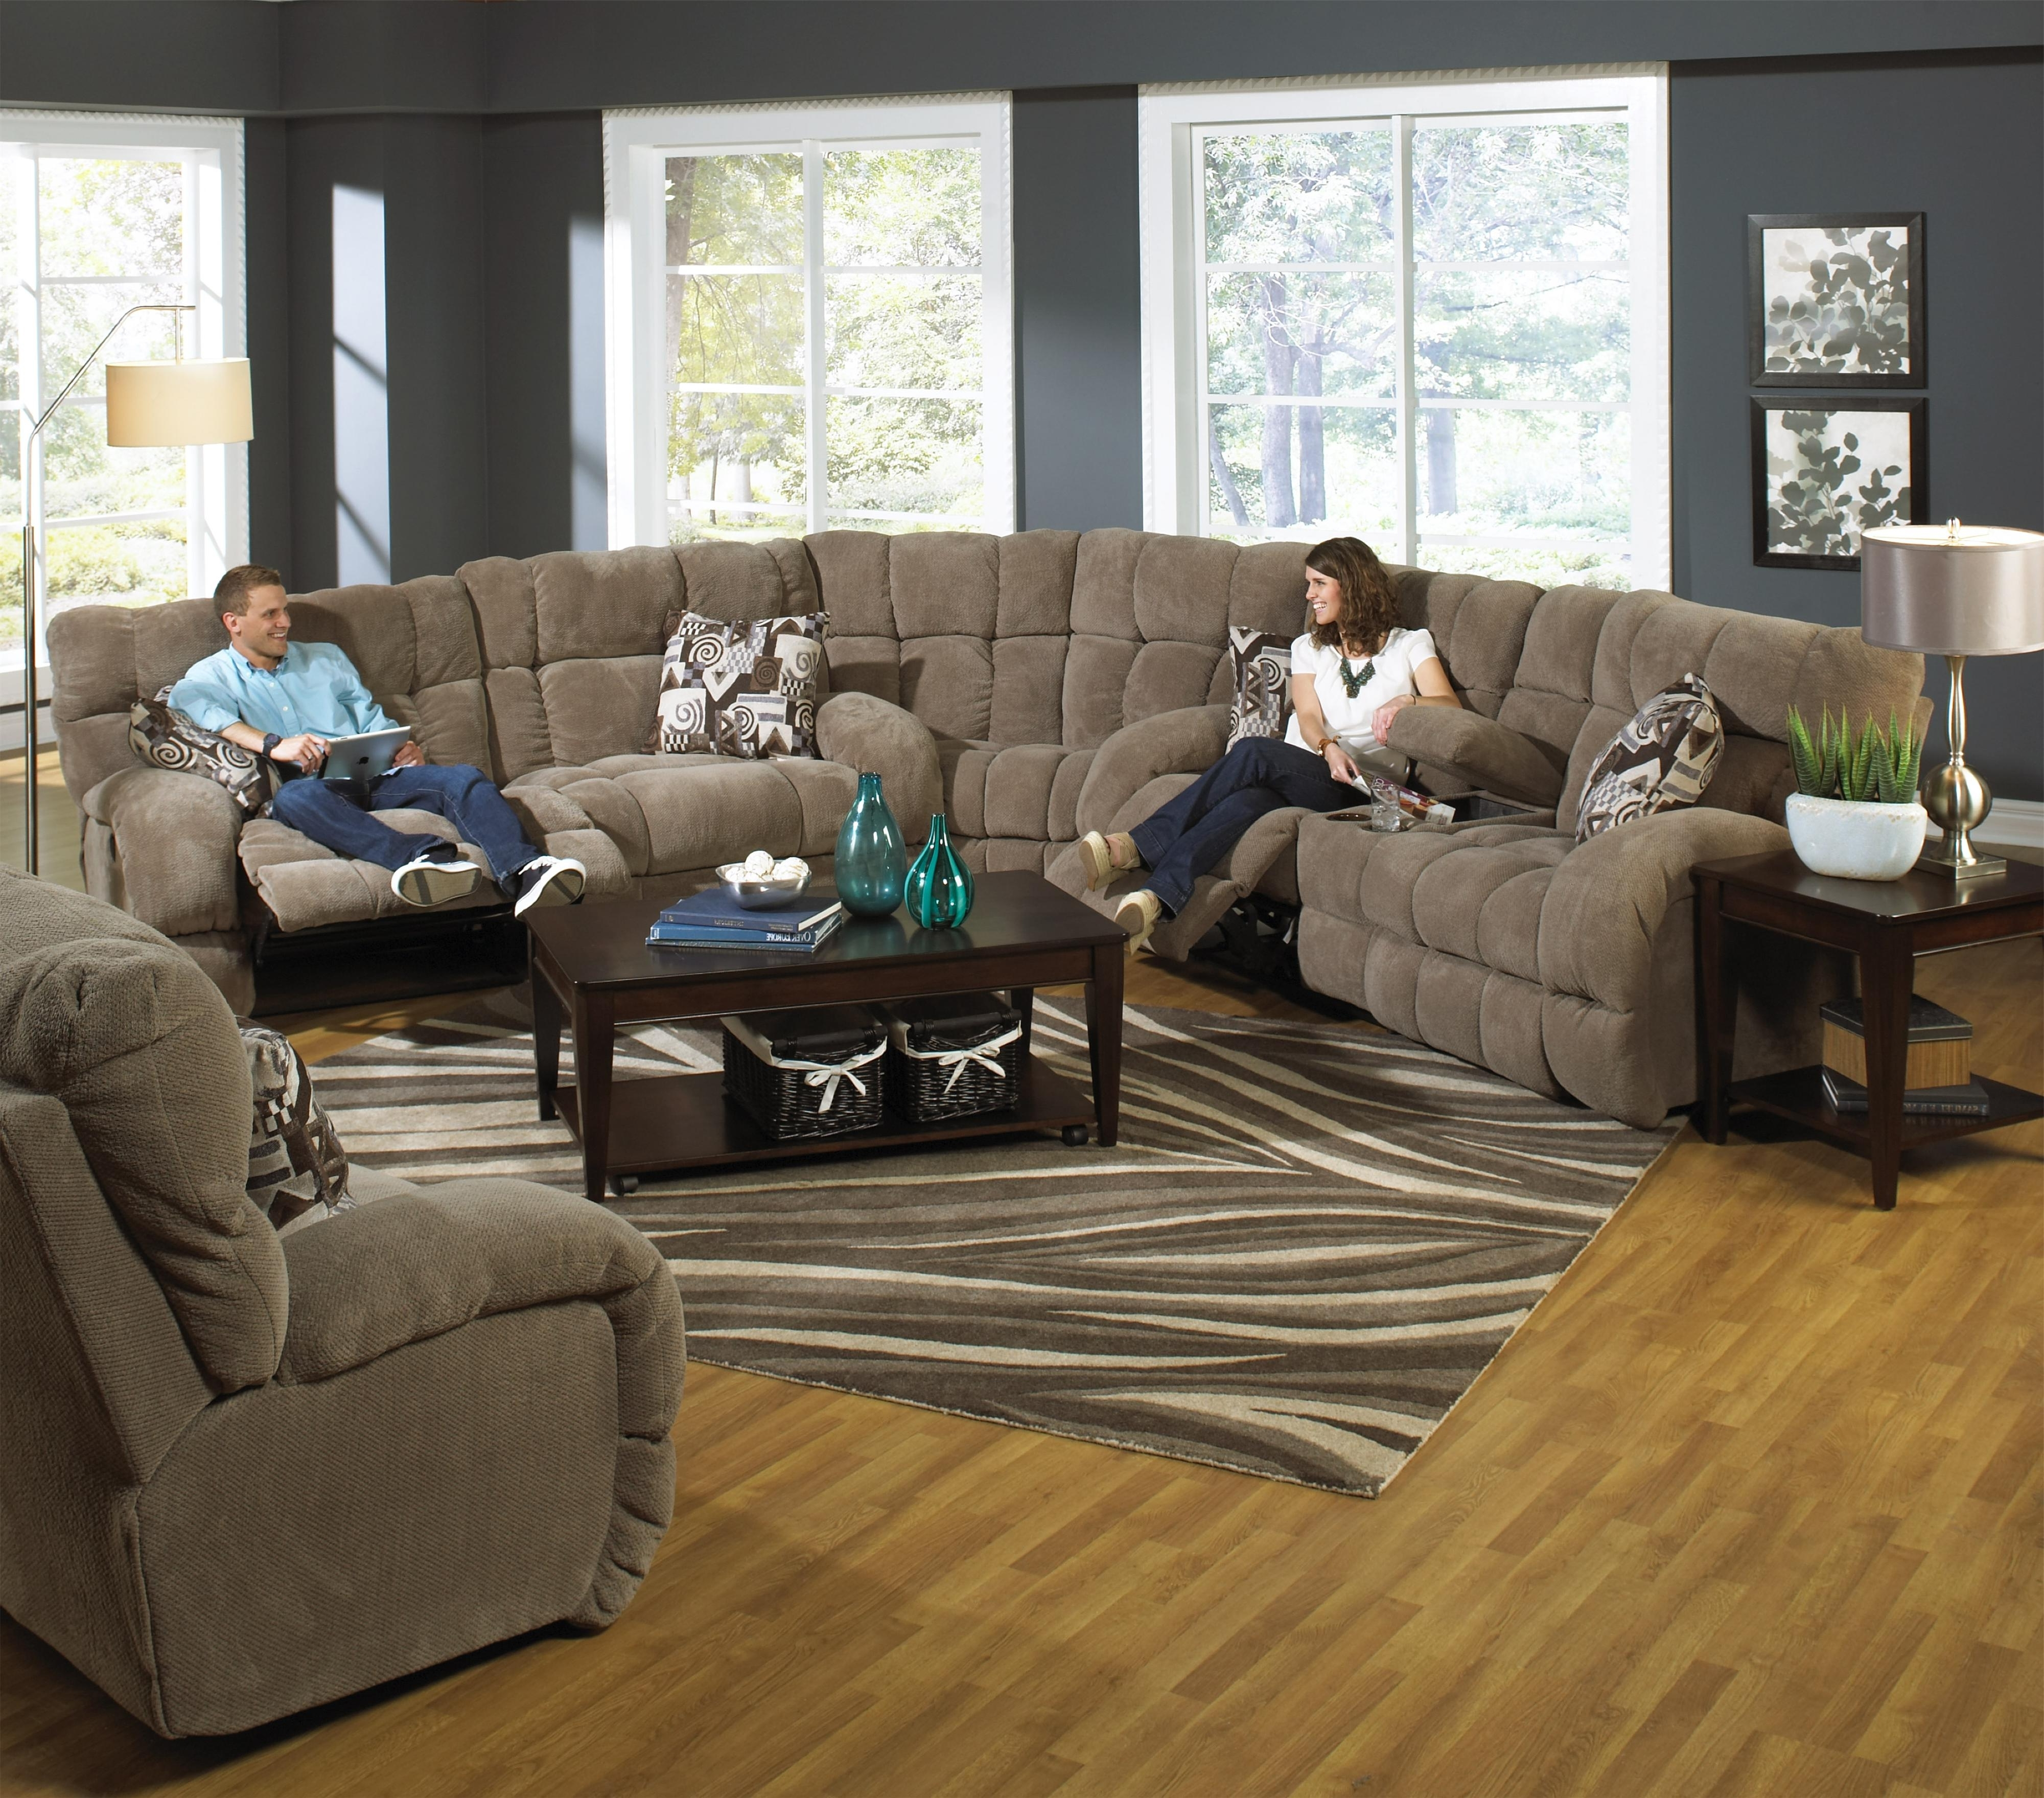 Well Known Power Reclining Sectional Sofa With Cup Holderscatnapper Within Sectional Sofas With Cup Holders (View 19 of 20)